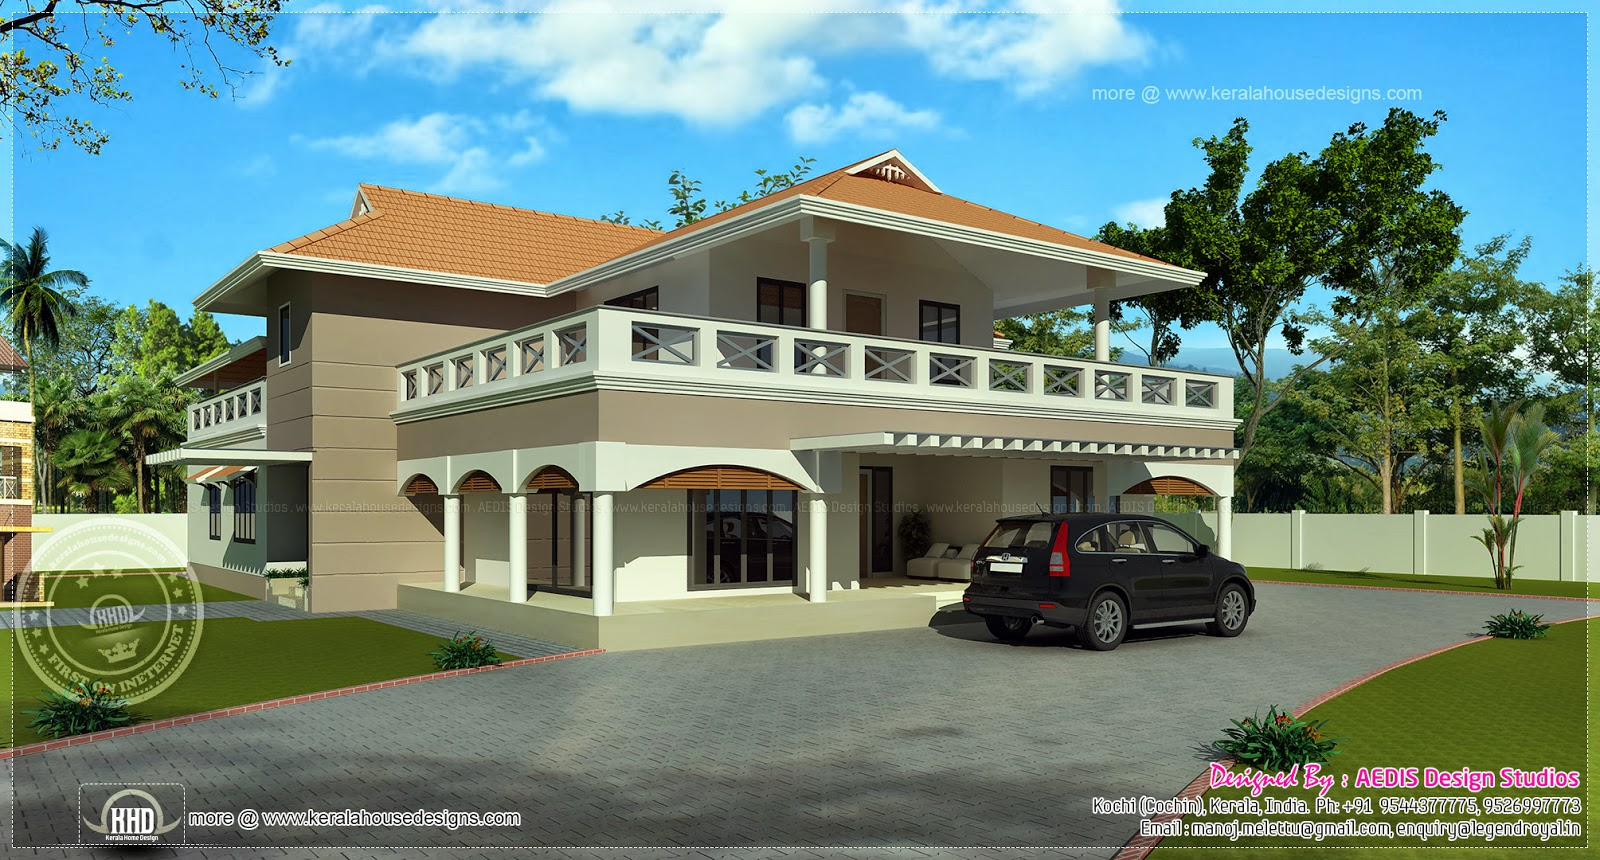 Sq Ft First Floor 939 Sq Ft Total Area 3843 Sq Ft Bedrooms 4